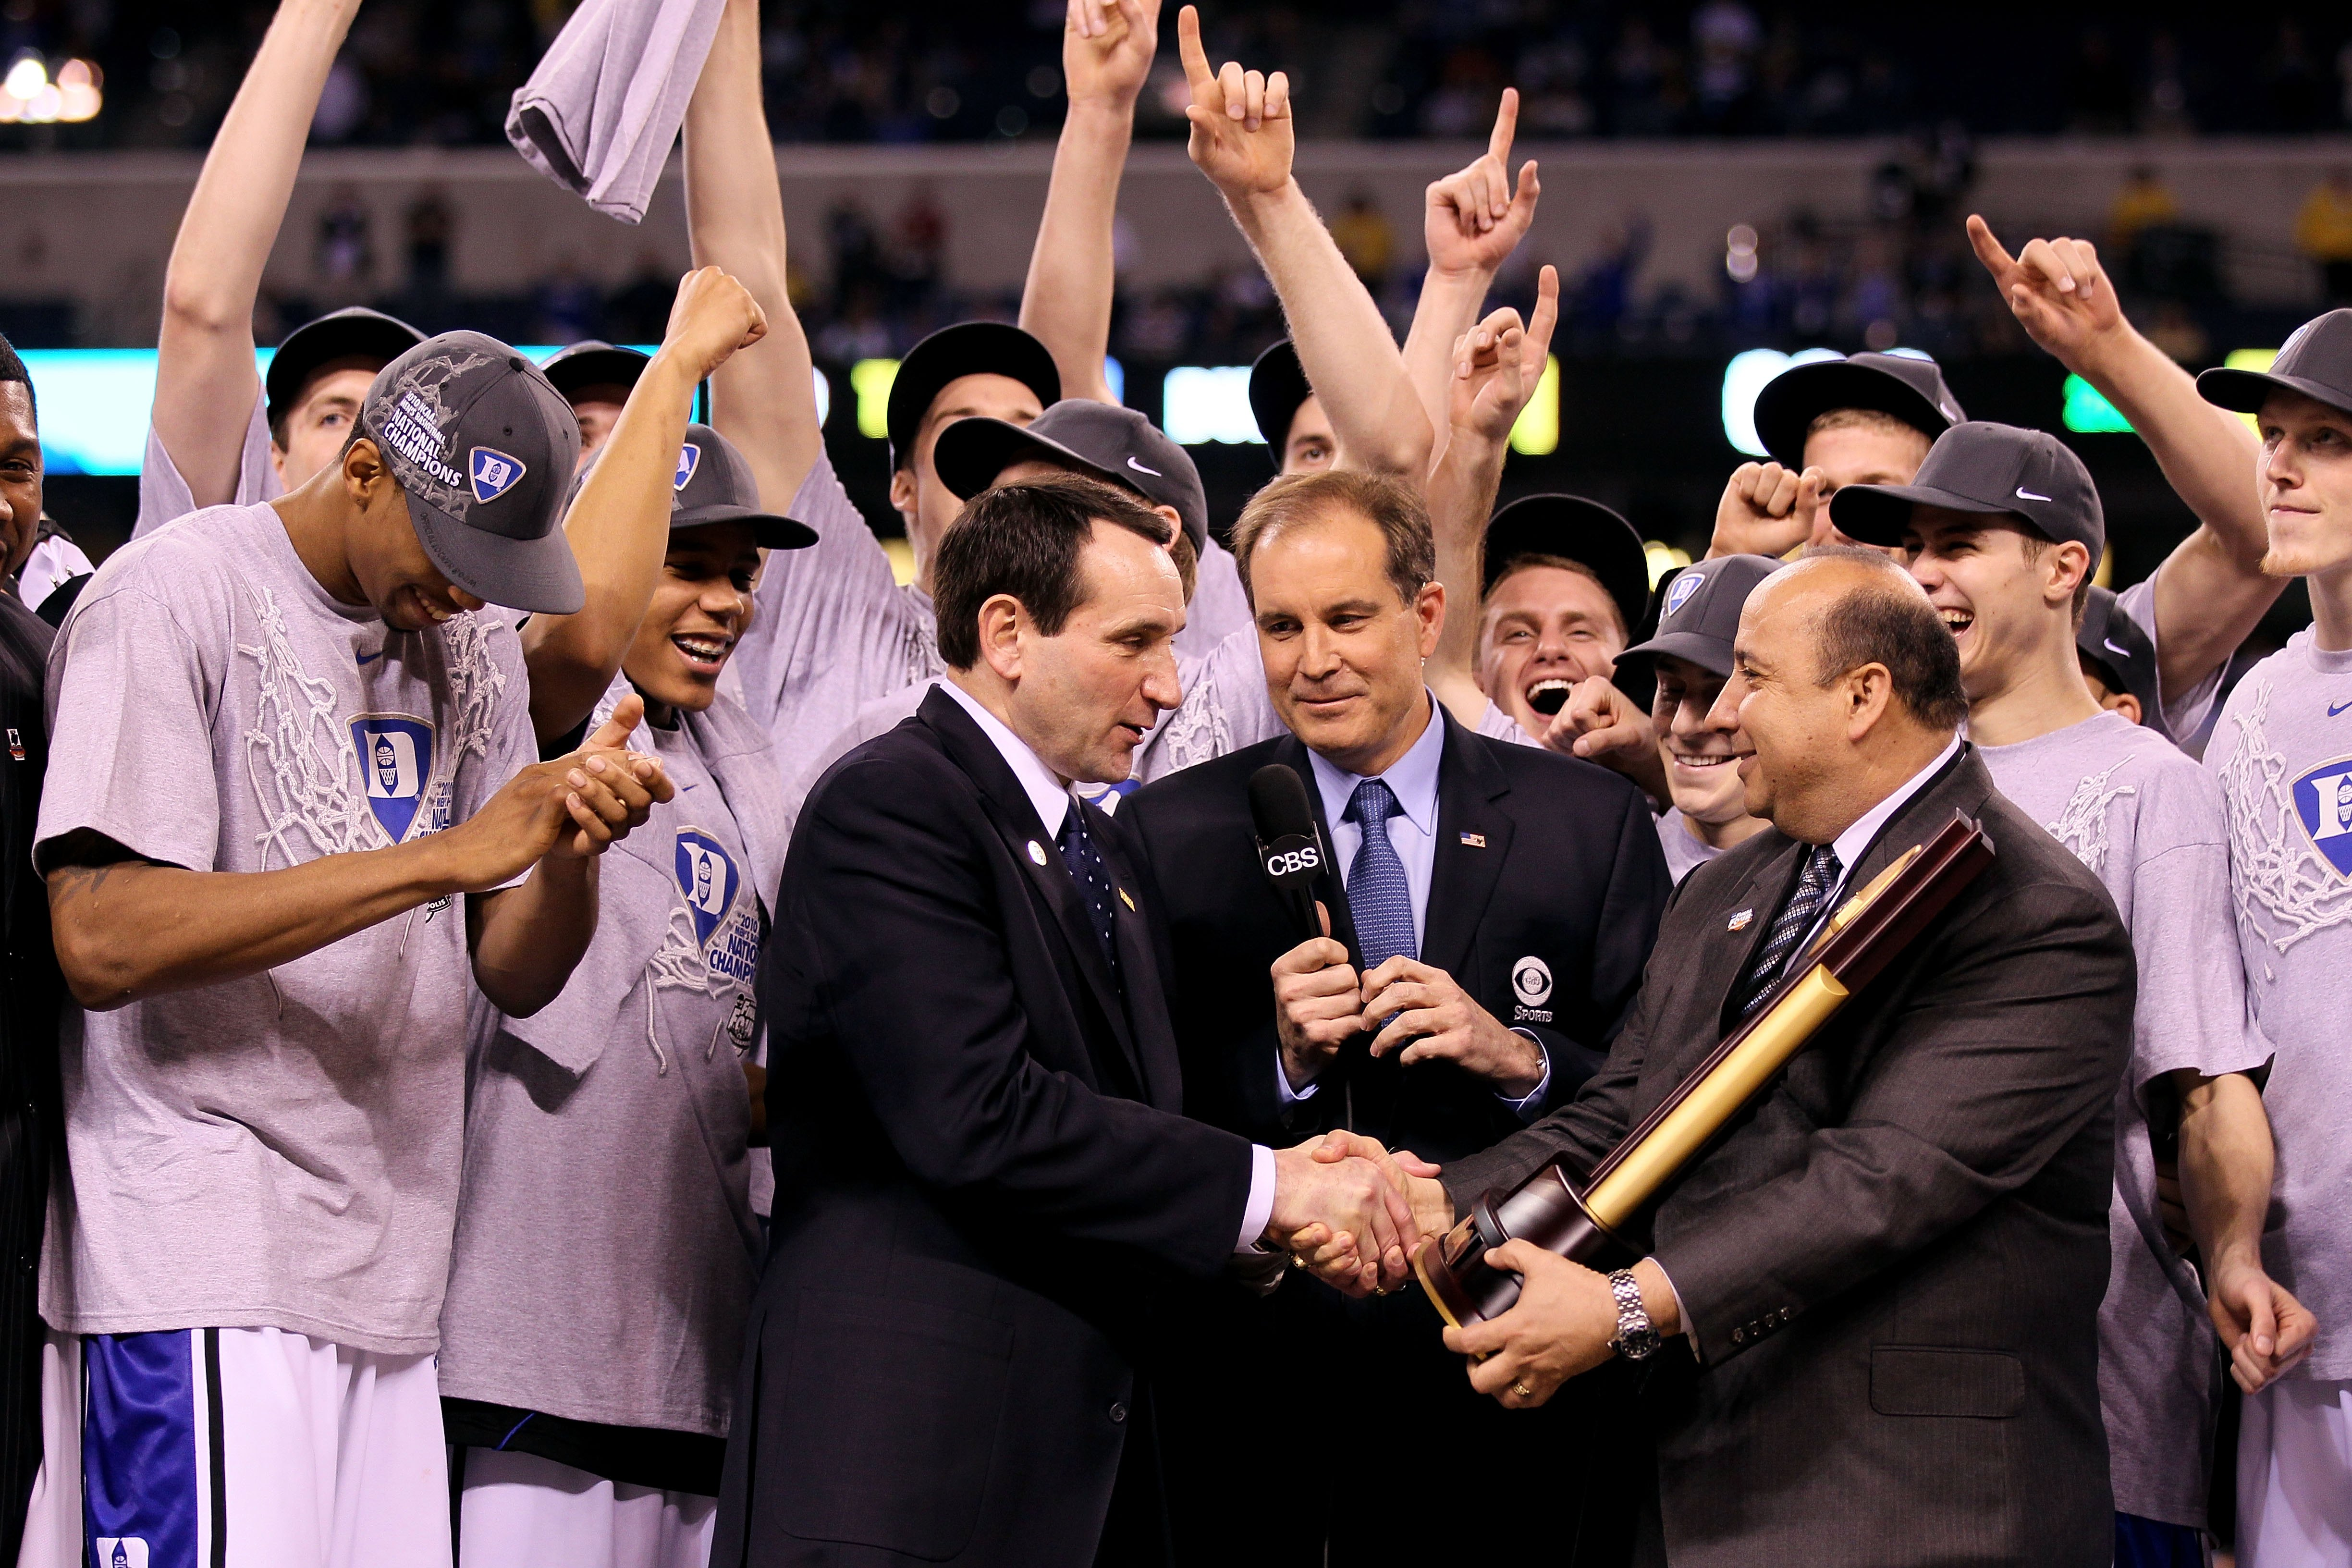 INDIANAPOLIS - APRIL 05:  Head coach Mike Krzyzewski of the Duke Blue Devils receives the trophy as his players celebrate after they won 61-59 against the Butler Bulldogs during the 2010 NCAA Division I Men's Basketball National Championship game at Lucas